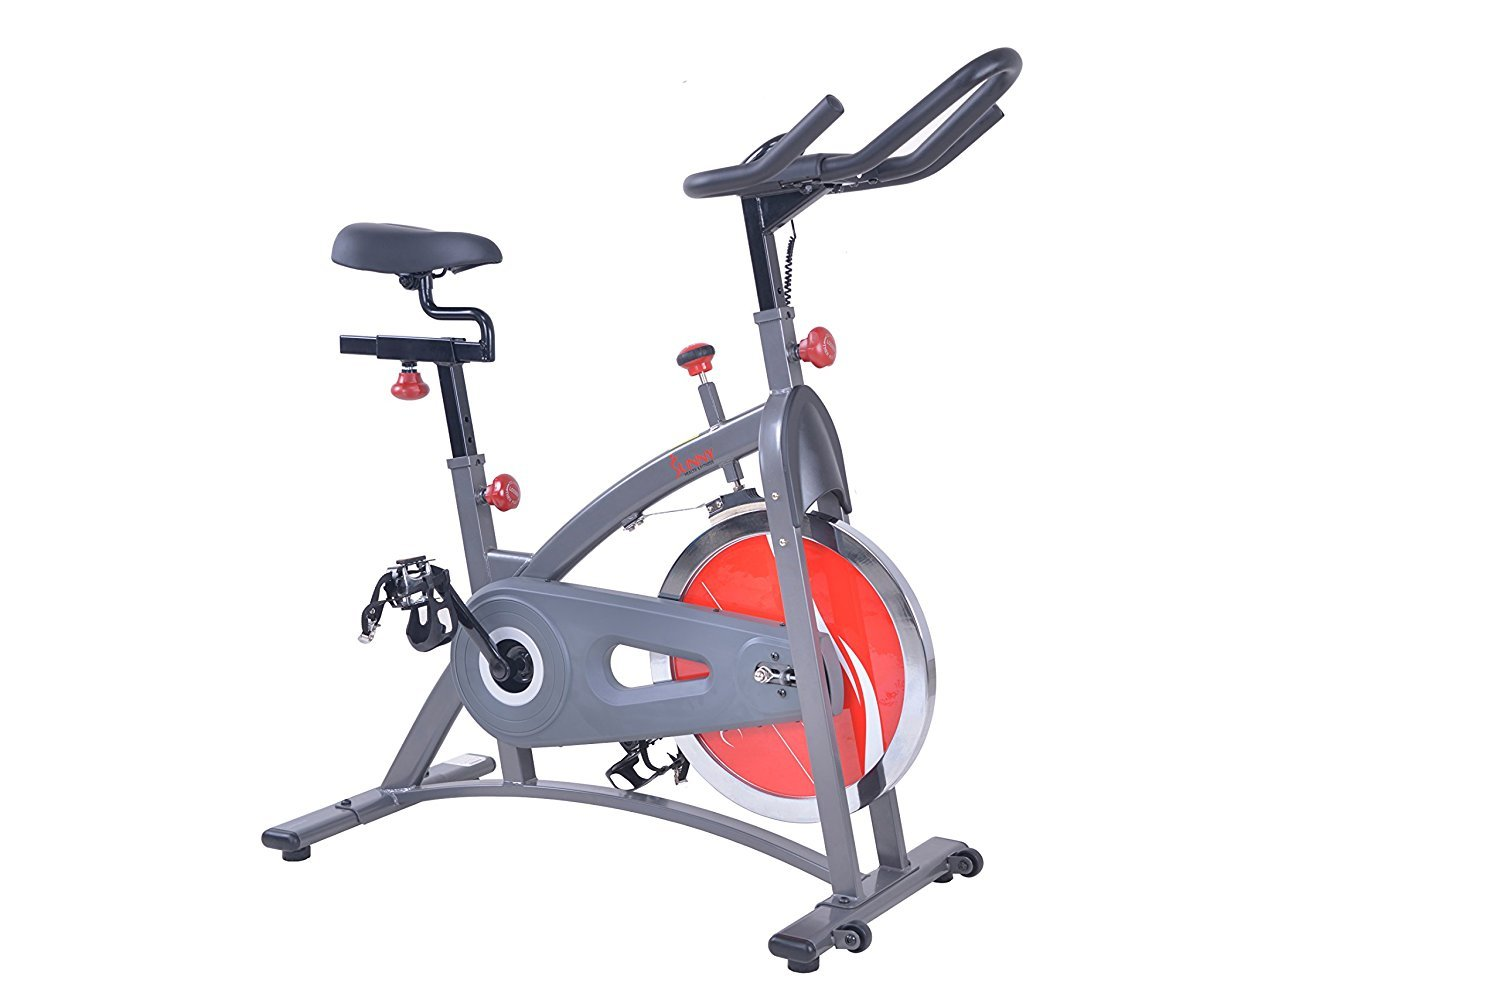 SUNNY SF-B1423C CHAIN DRIVE INDOOR CYCLING BIKE